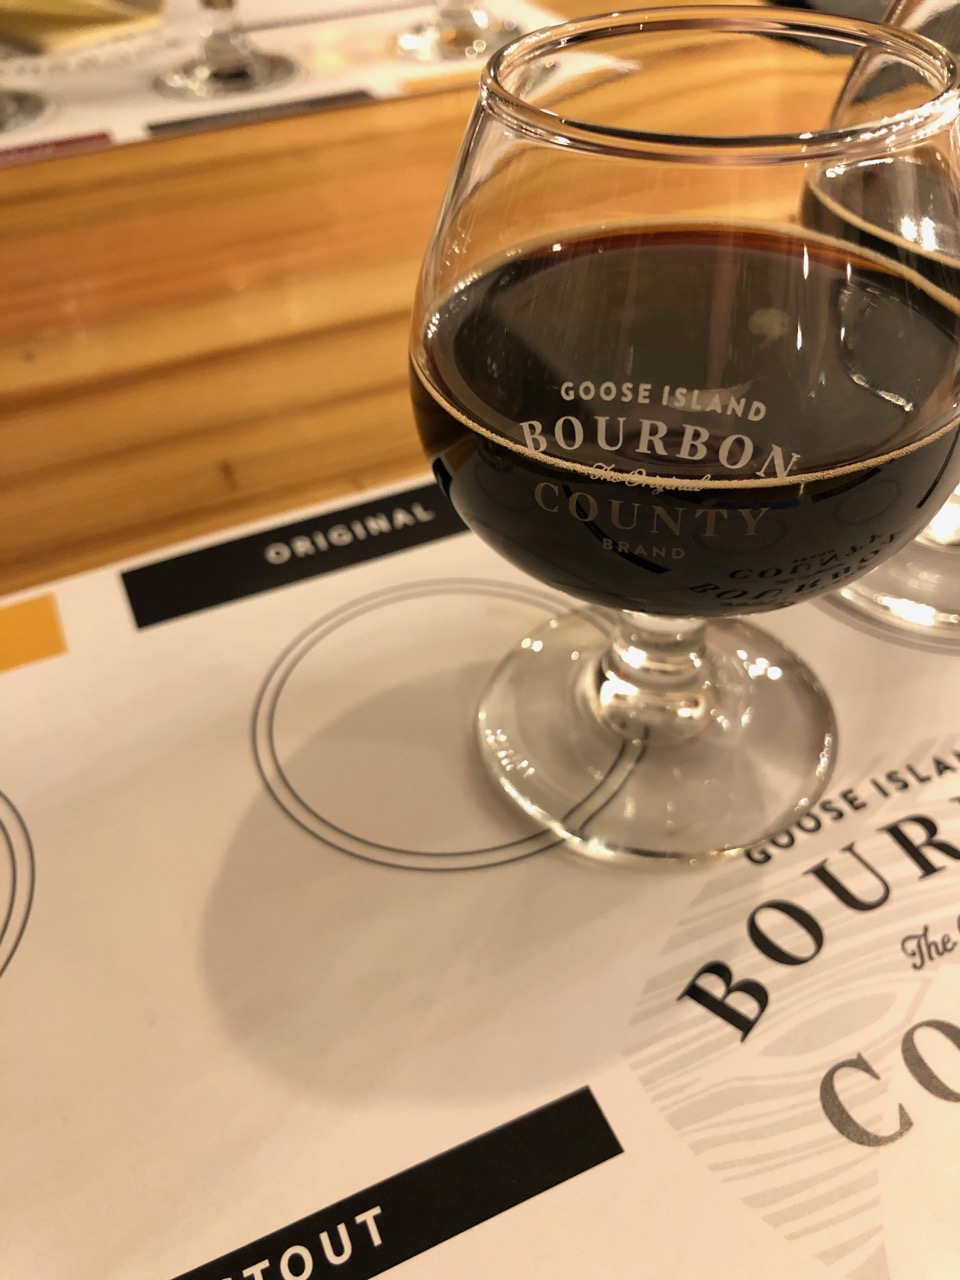 2019 Bourbon County Stout Original